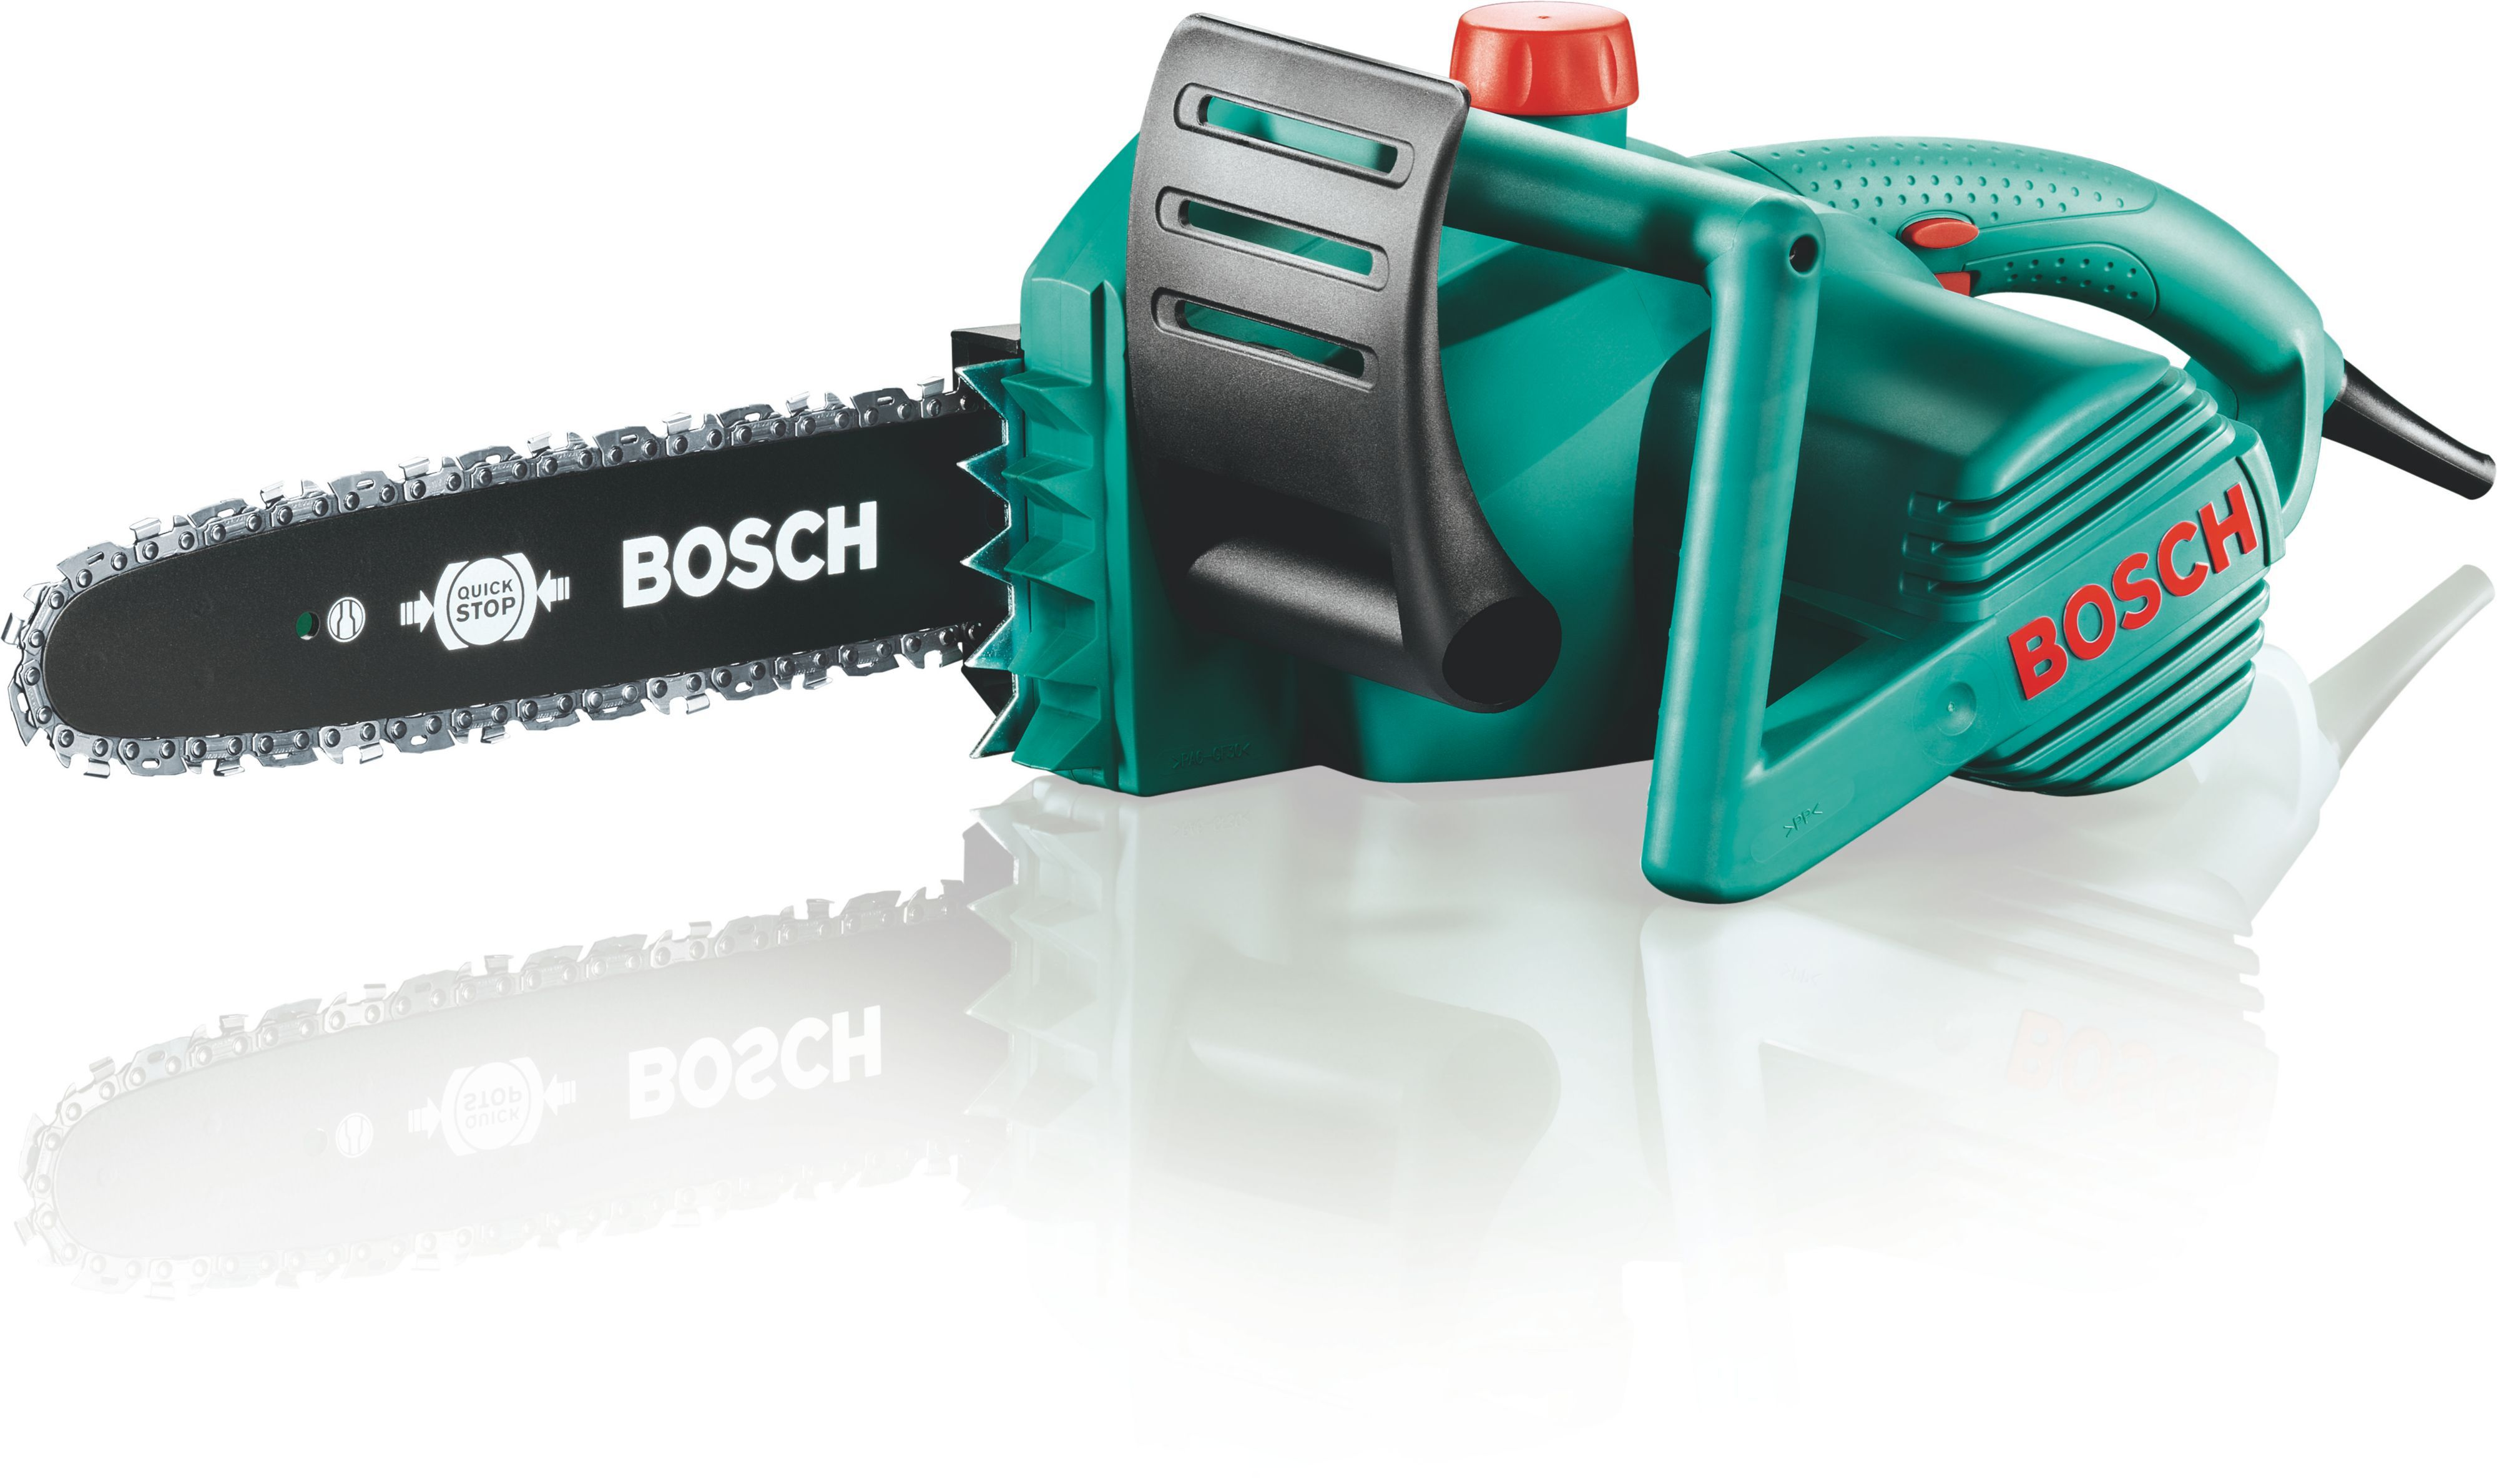 bosch ake 30 s corded electric chainsaw departments diy at b q. Black Bedroom Furniture Sets. Home Design Ideas